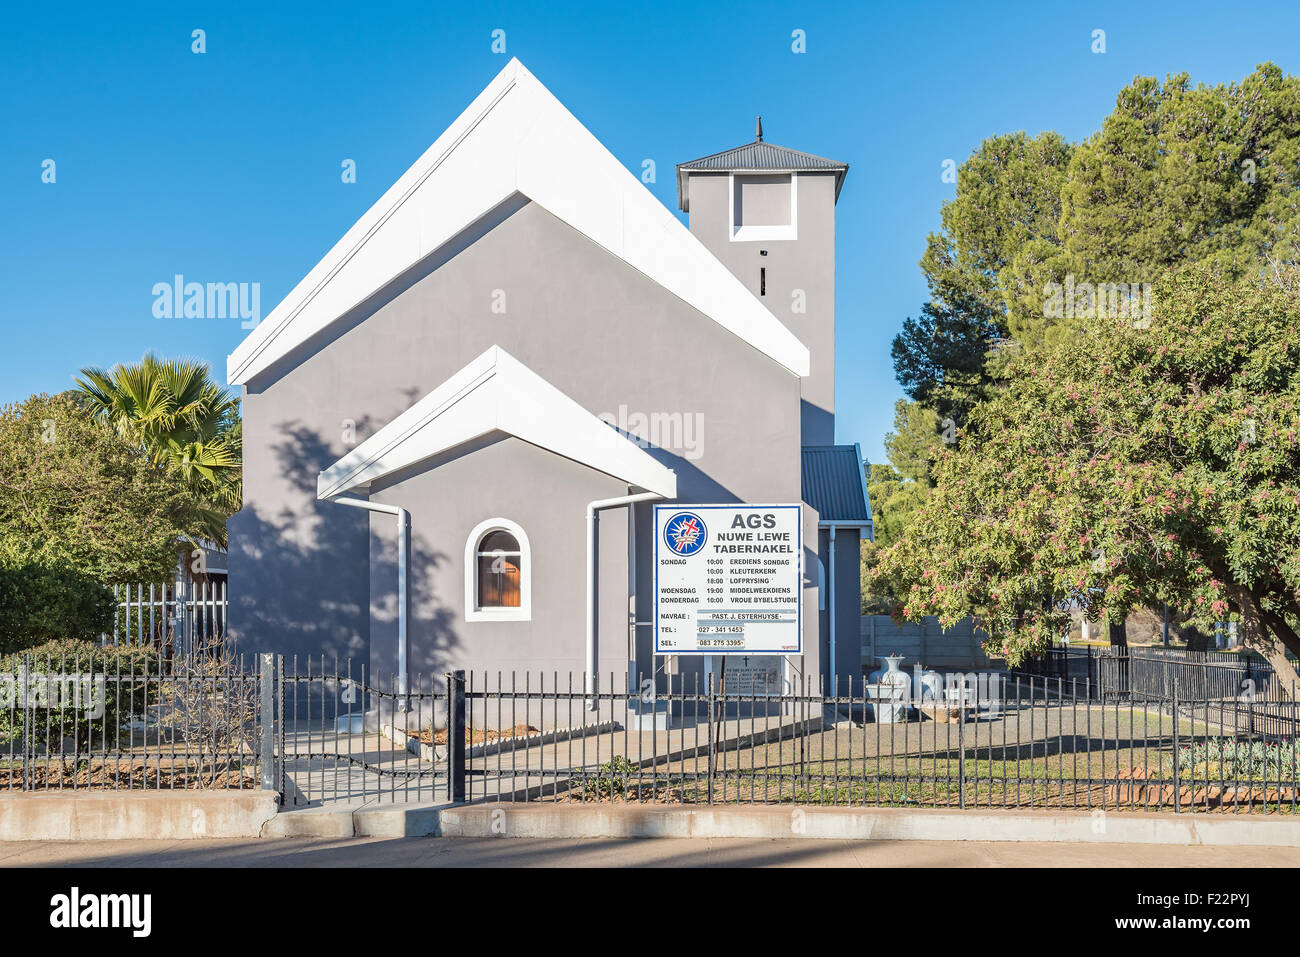 CALVINIA, SOUTH AFRICA - AUGUST 10, 2015: The church building of the Apostolic Faith Mission in Calvinia was built - Stock Image